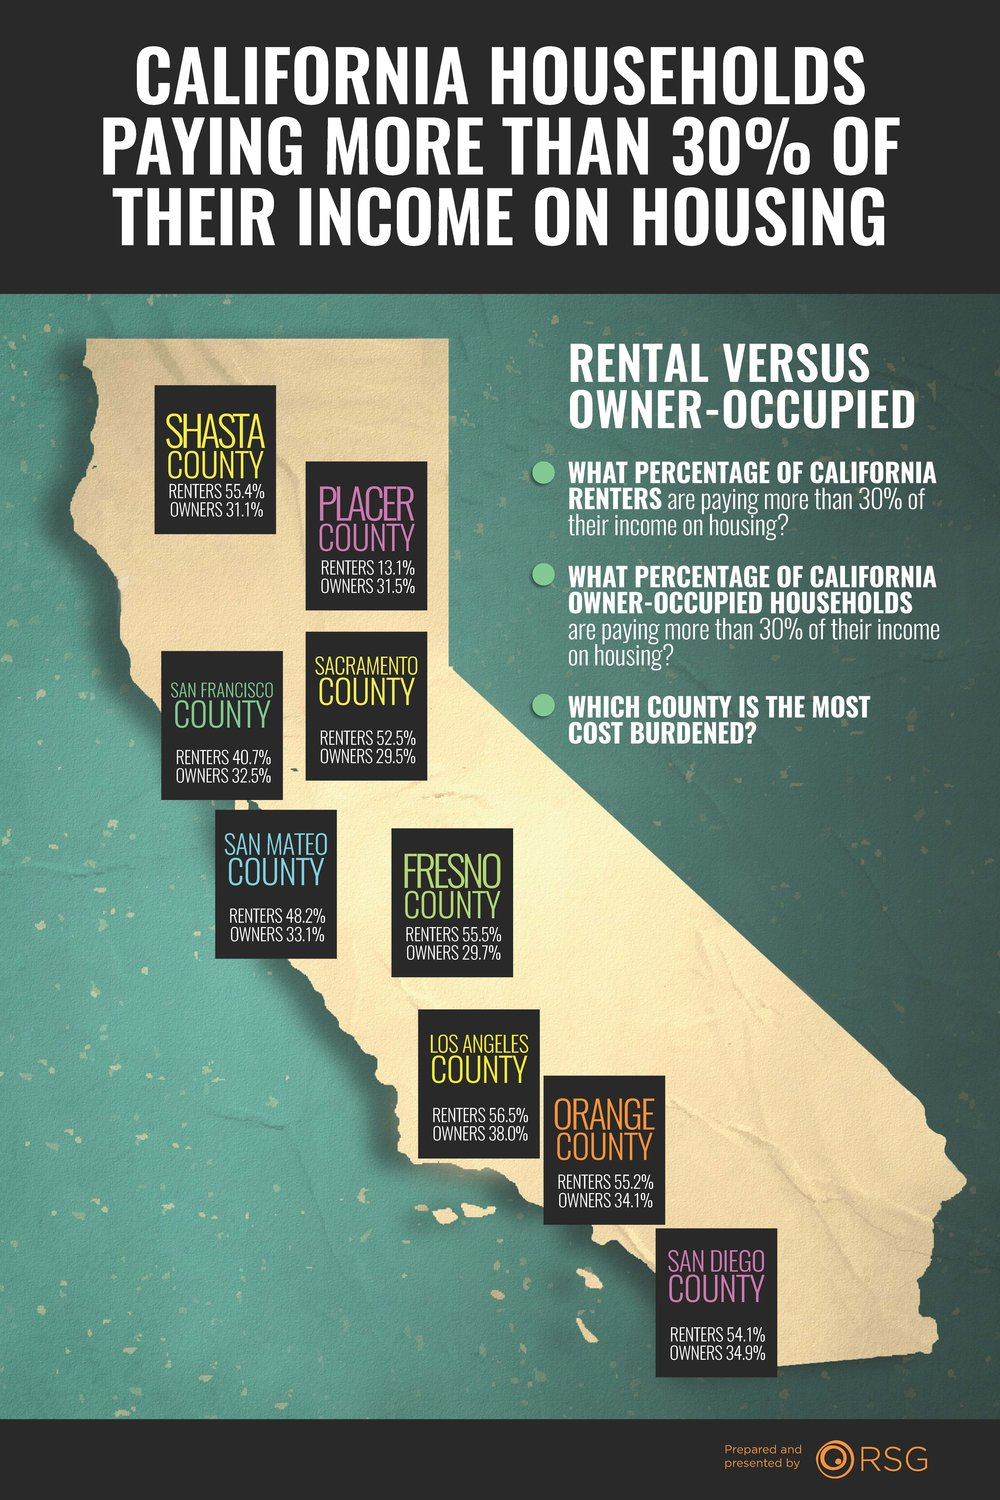 Housing california infographic.jpg